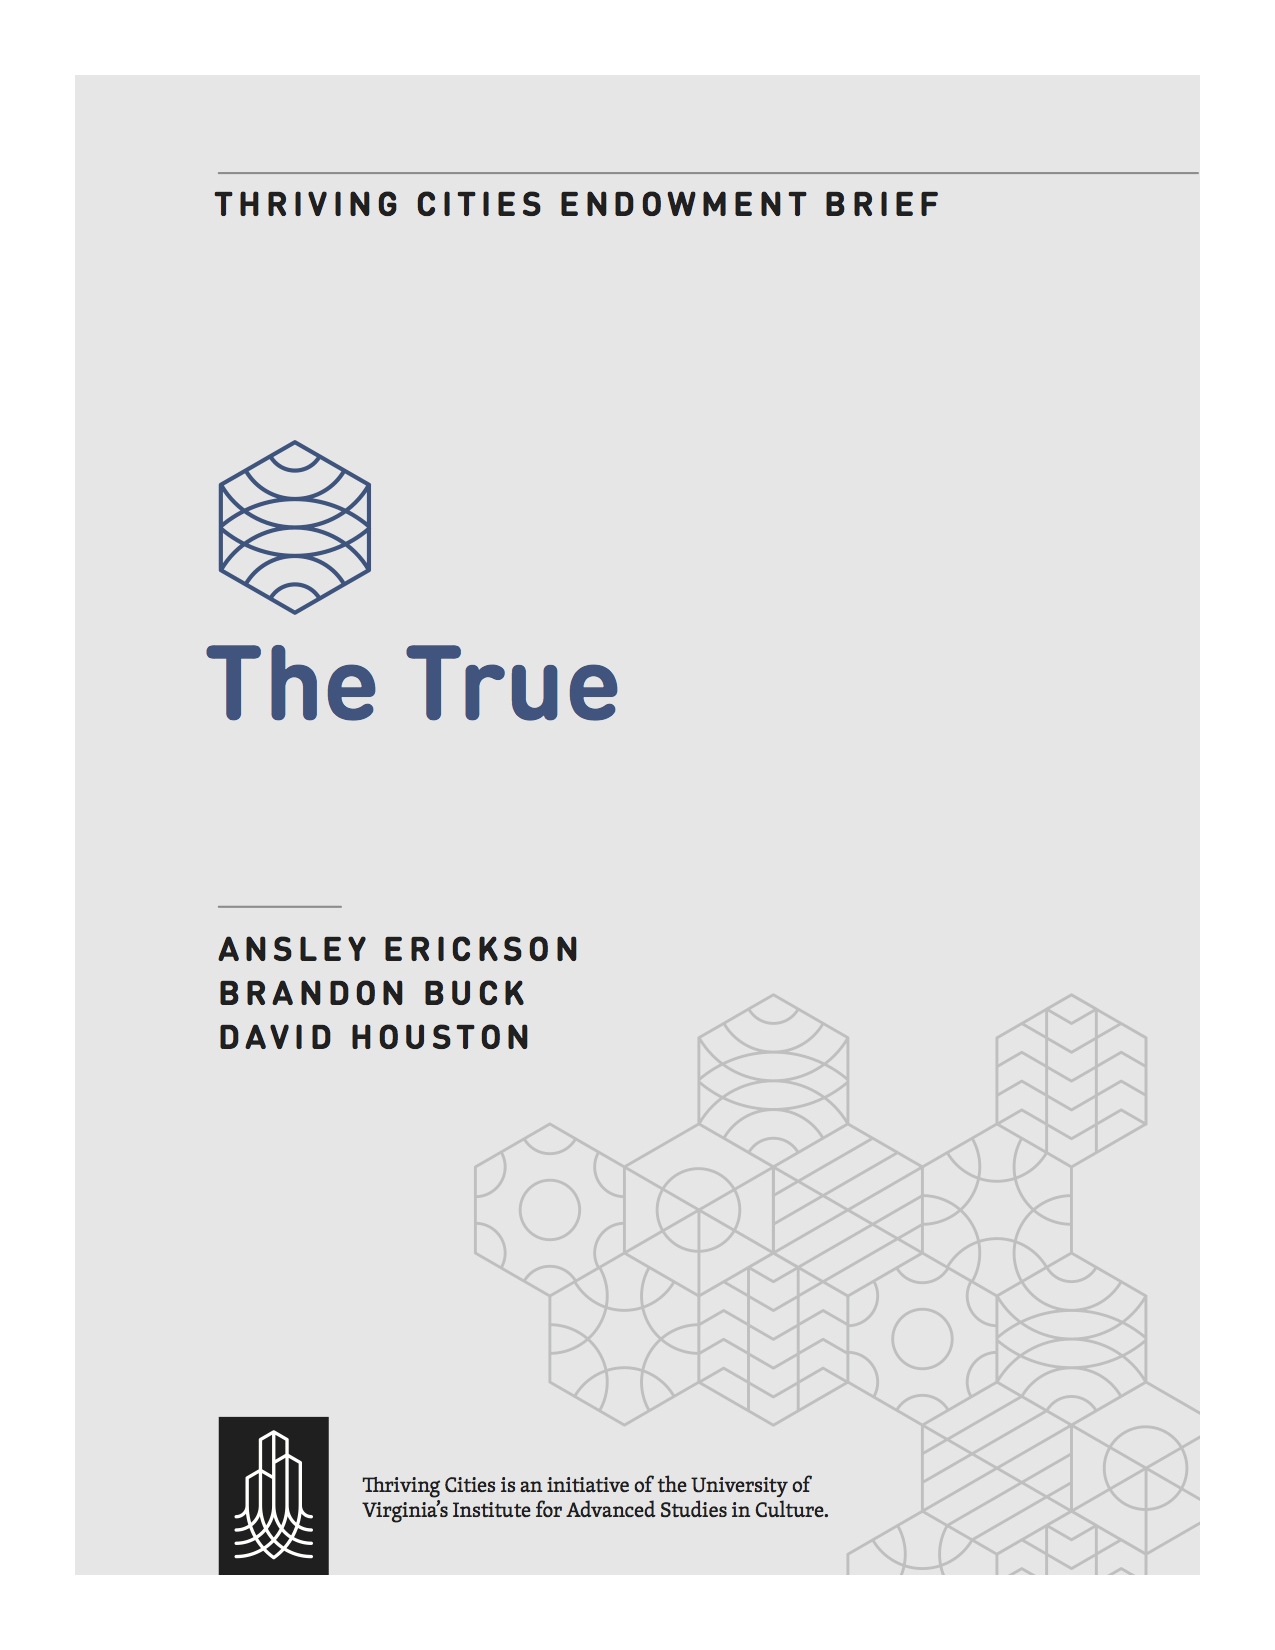 Endowment-Brief-The-True (dragged).png